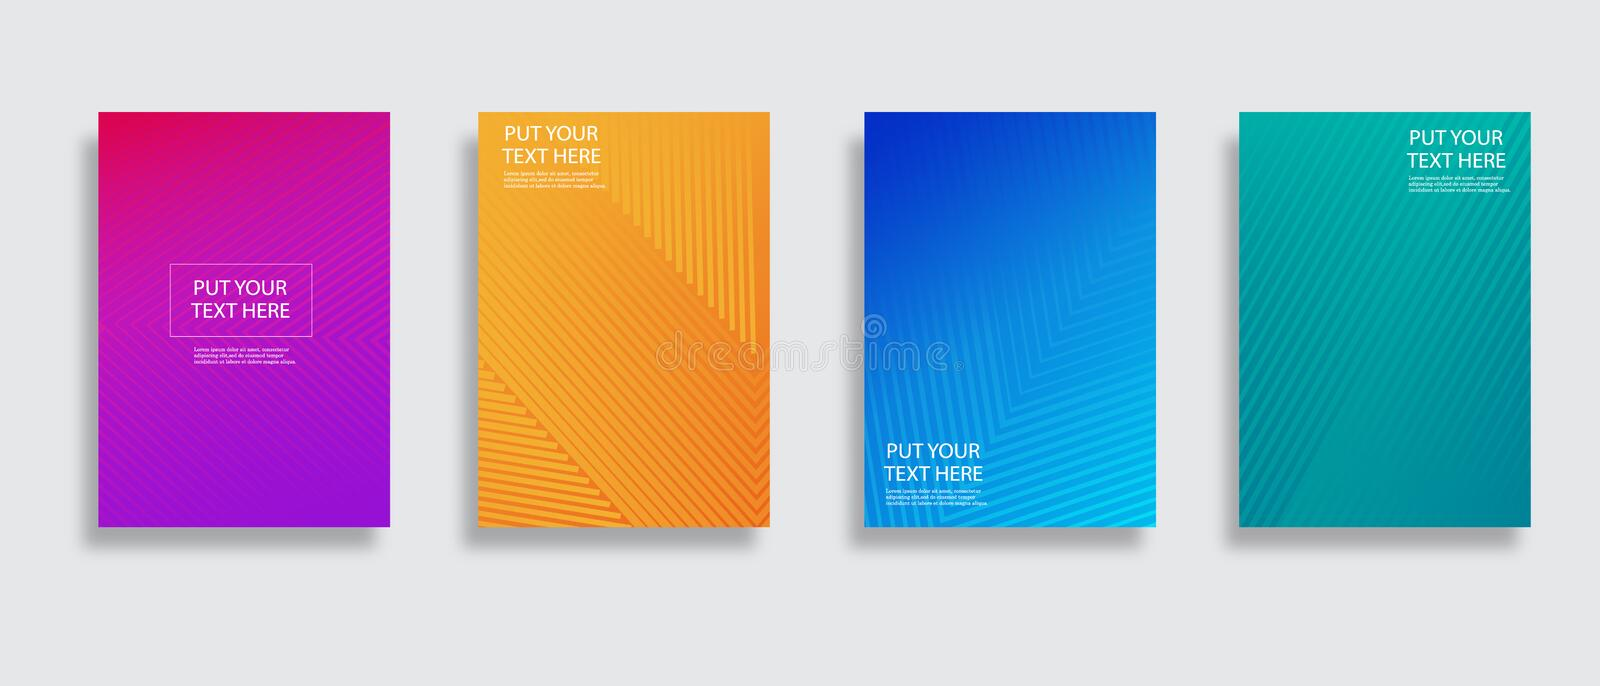 Minimal covers design. Colorful halftone gradients.background modern template design for web. Cool gradients. Future vector illustration